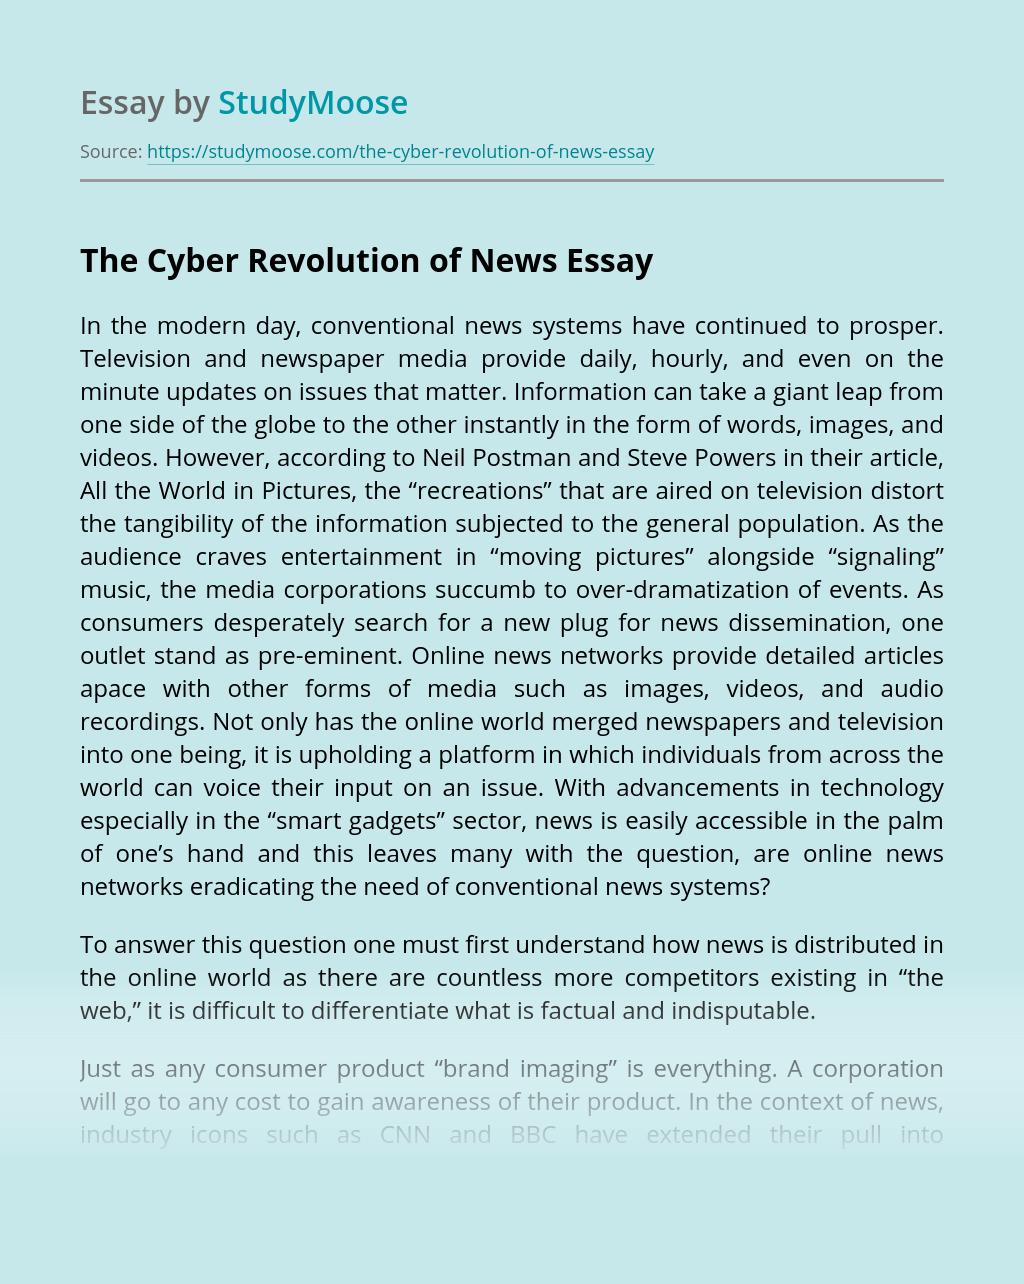 The Cyber Revolution of News